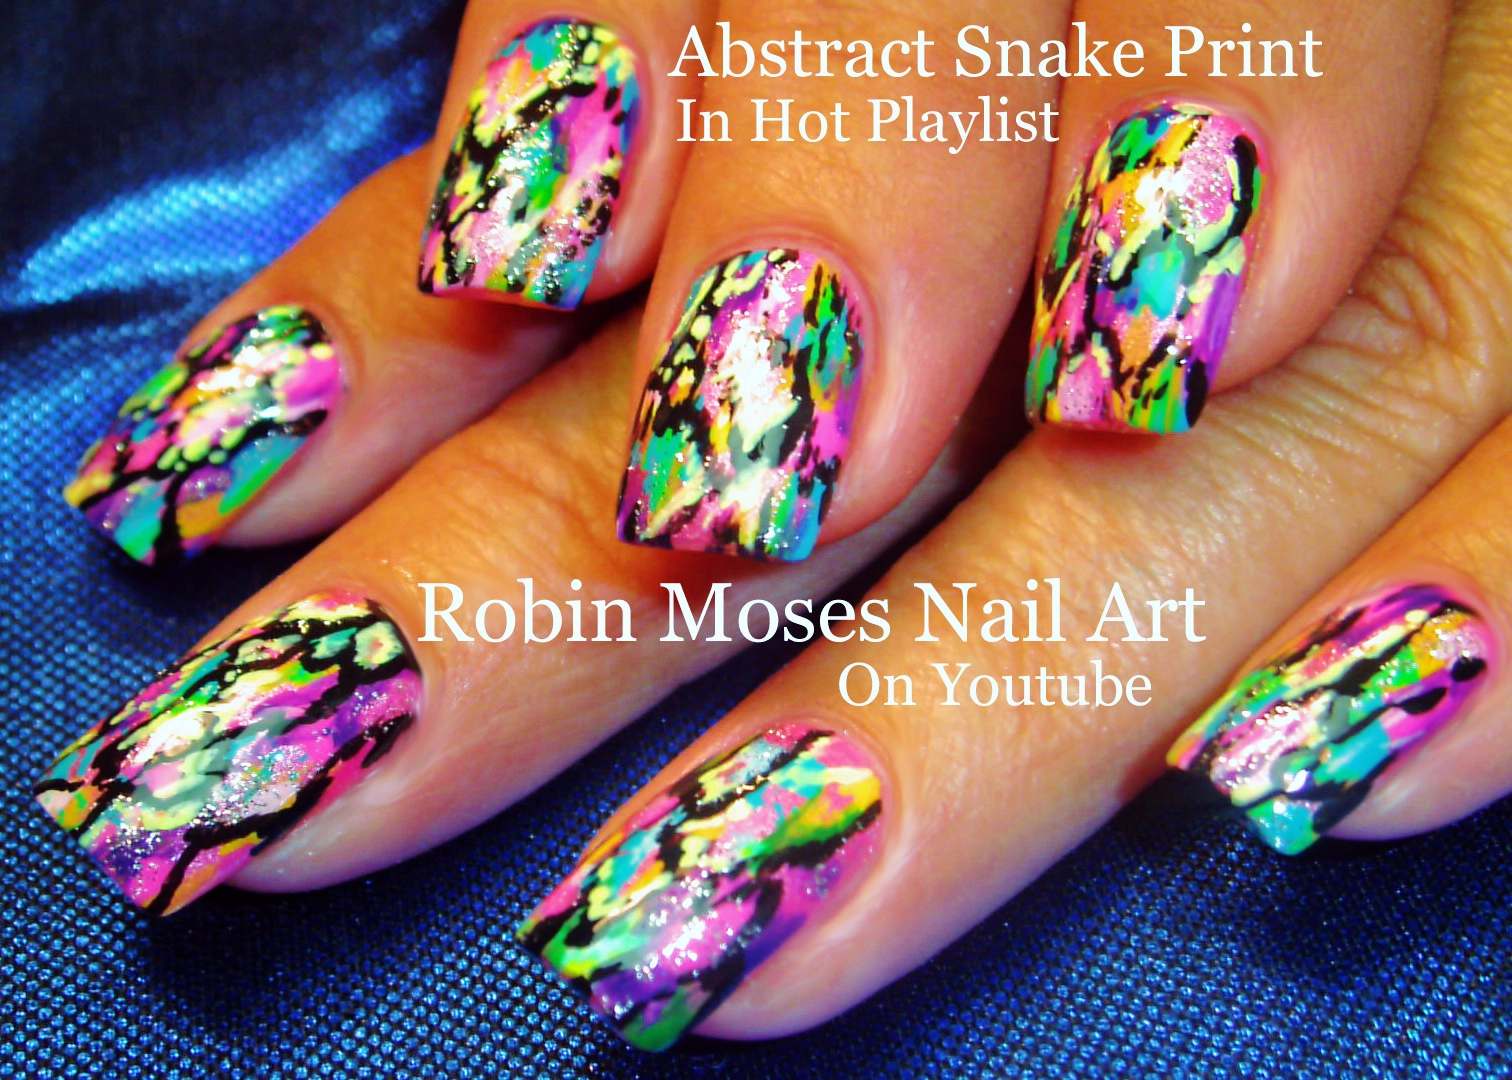 Robin Moses Nail Art Abstract Watercolor Nails Abstract Nail within The Most Incredible abstract nail art design 2015 intended for your reference